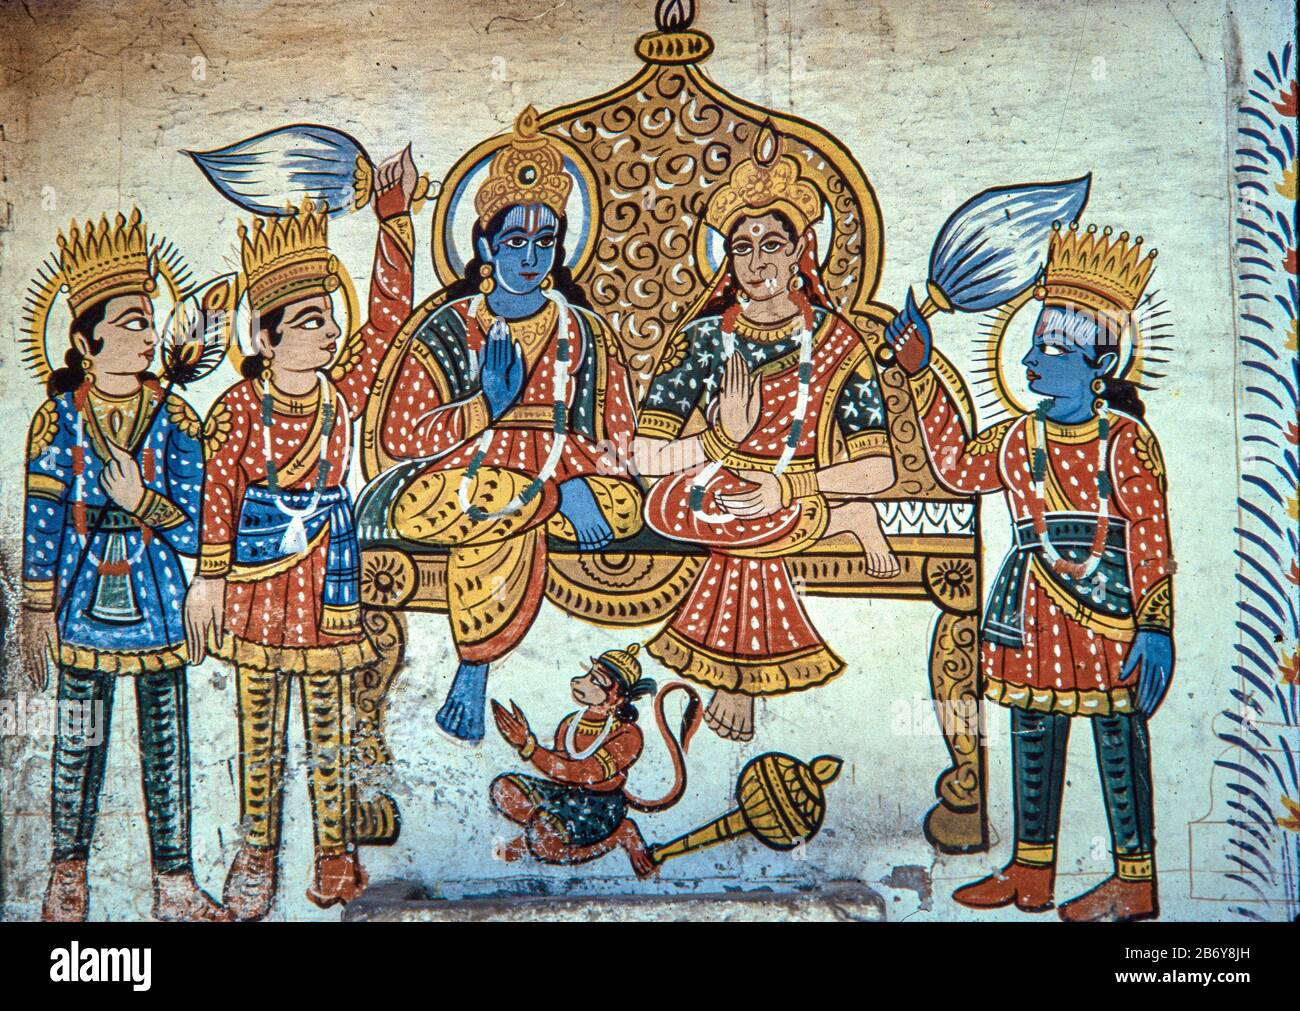 Ram Darbar High Resolution Stock Photography And Images Alamy